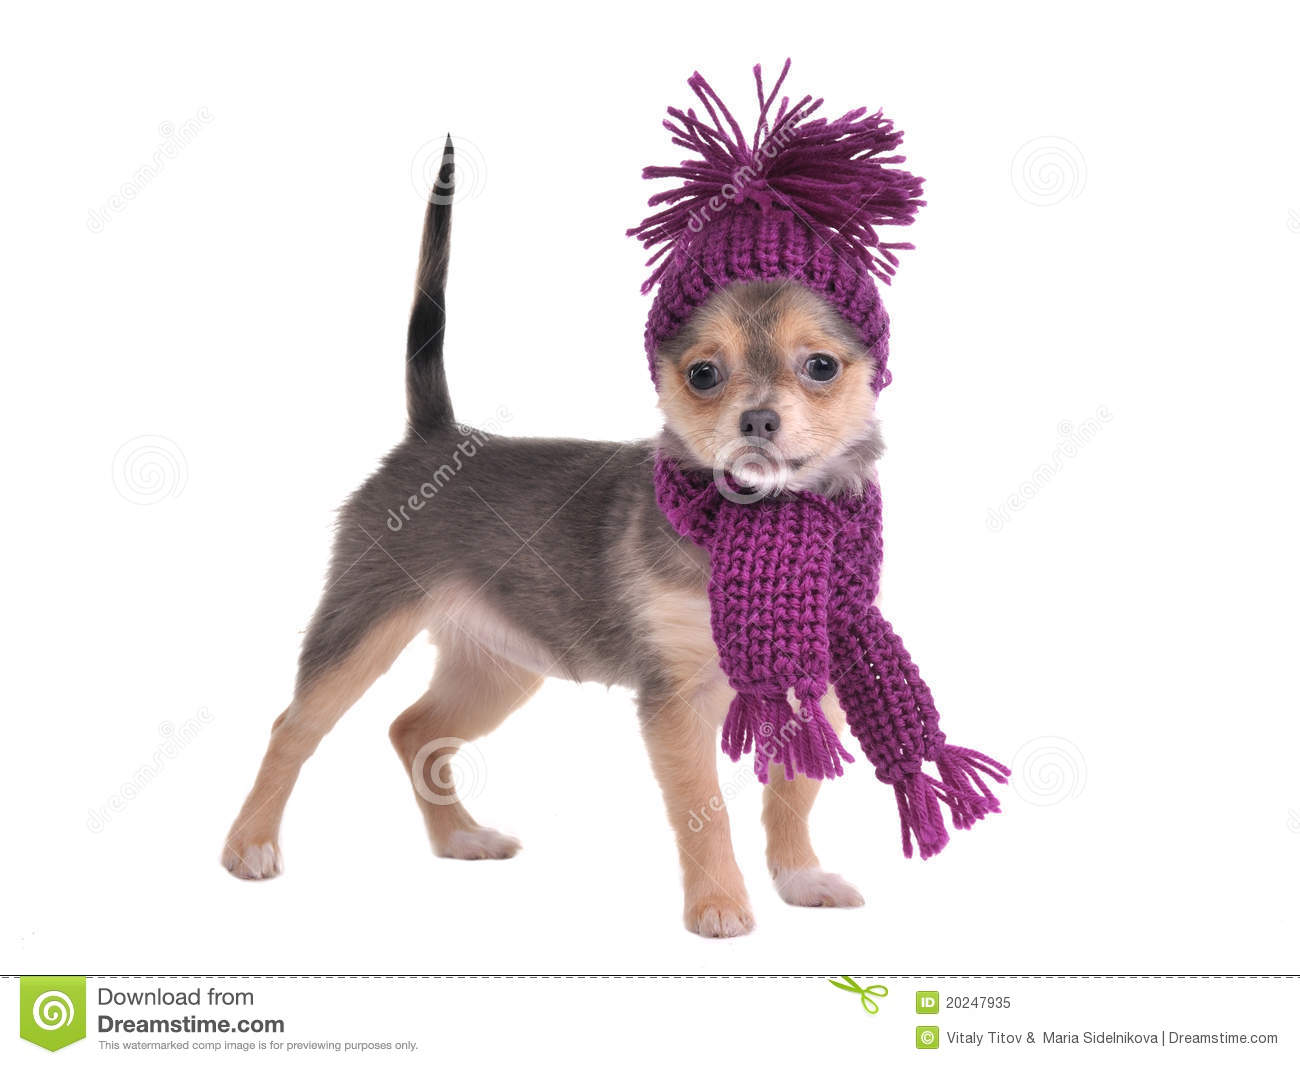 61df568e73b90 Chihuahua Puppy Wearing Hat And Scarf Stock Image - Image of ...